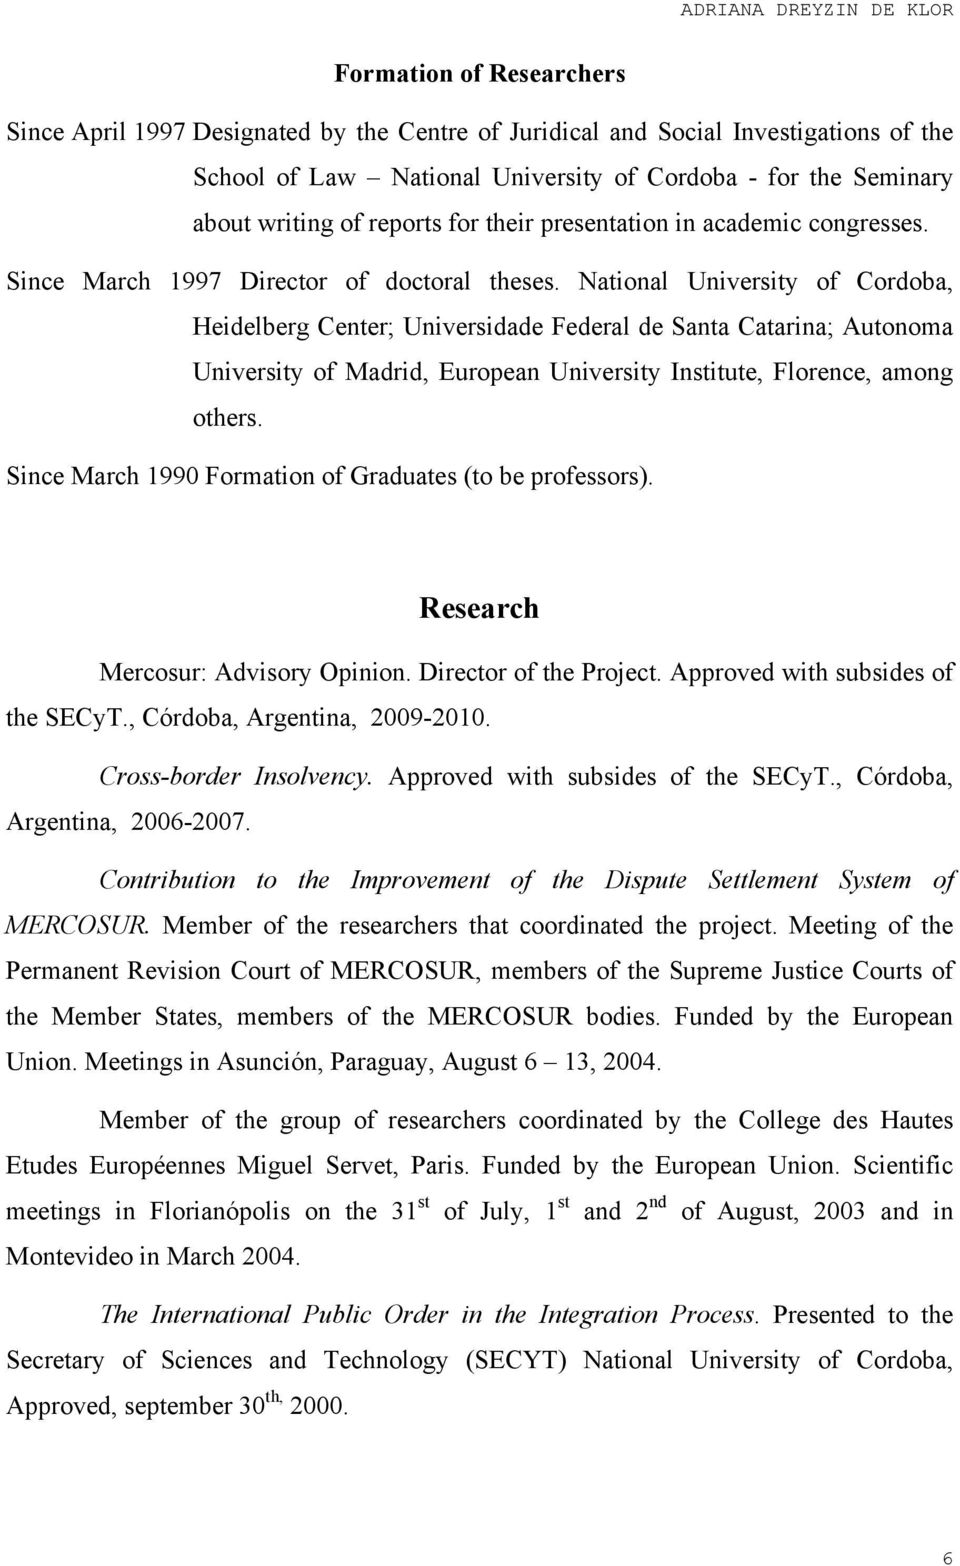 National University of Cordoba, Heidelberg Center; Universidade Federal de Santa Catarina; Autonoma University of Madrid, European University Institute, Florence, among others.